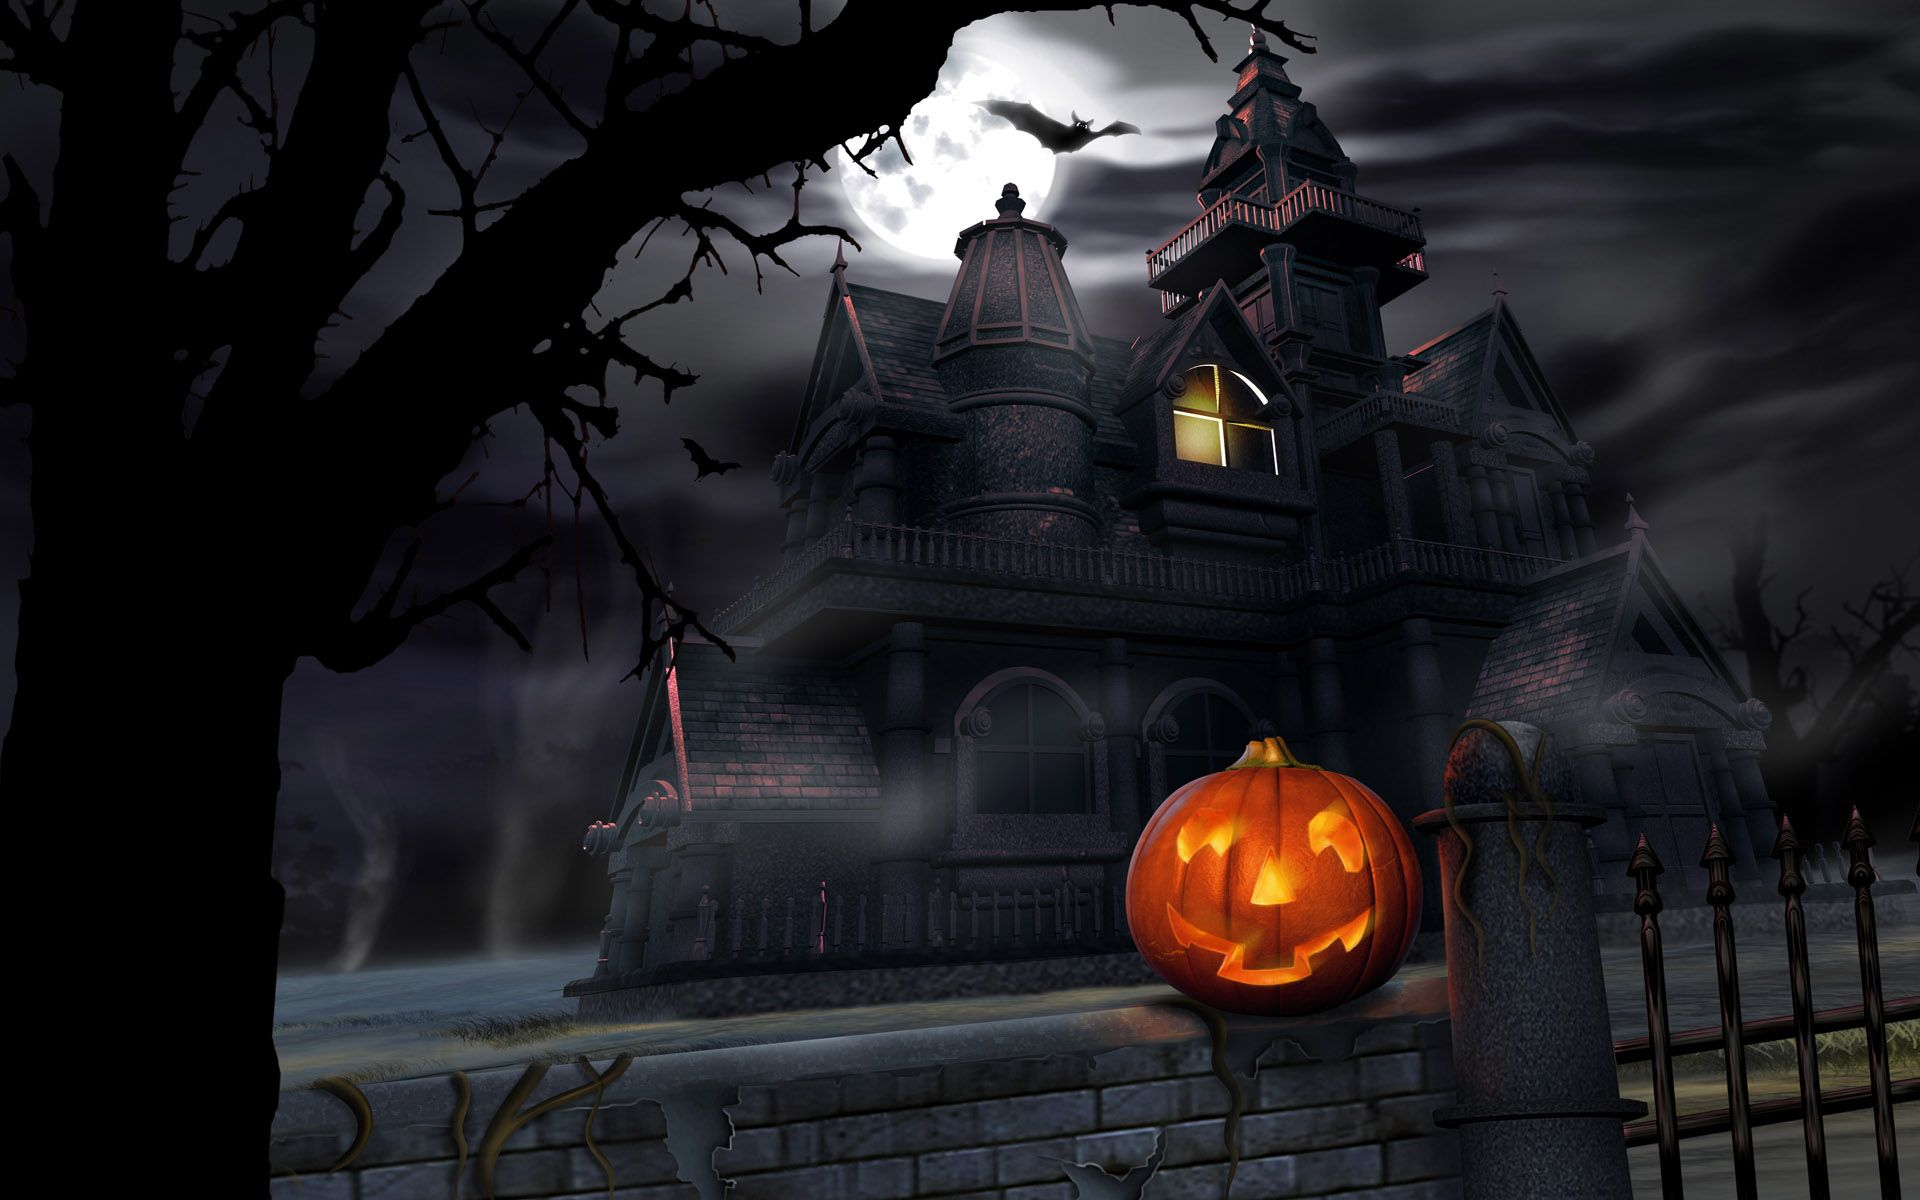 45 Scary Halloween 2012 Hd Wallpapers With Images Halloween